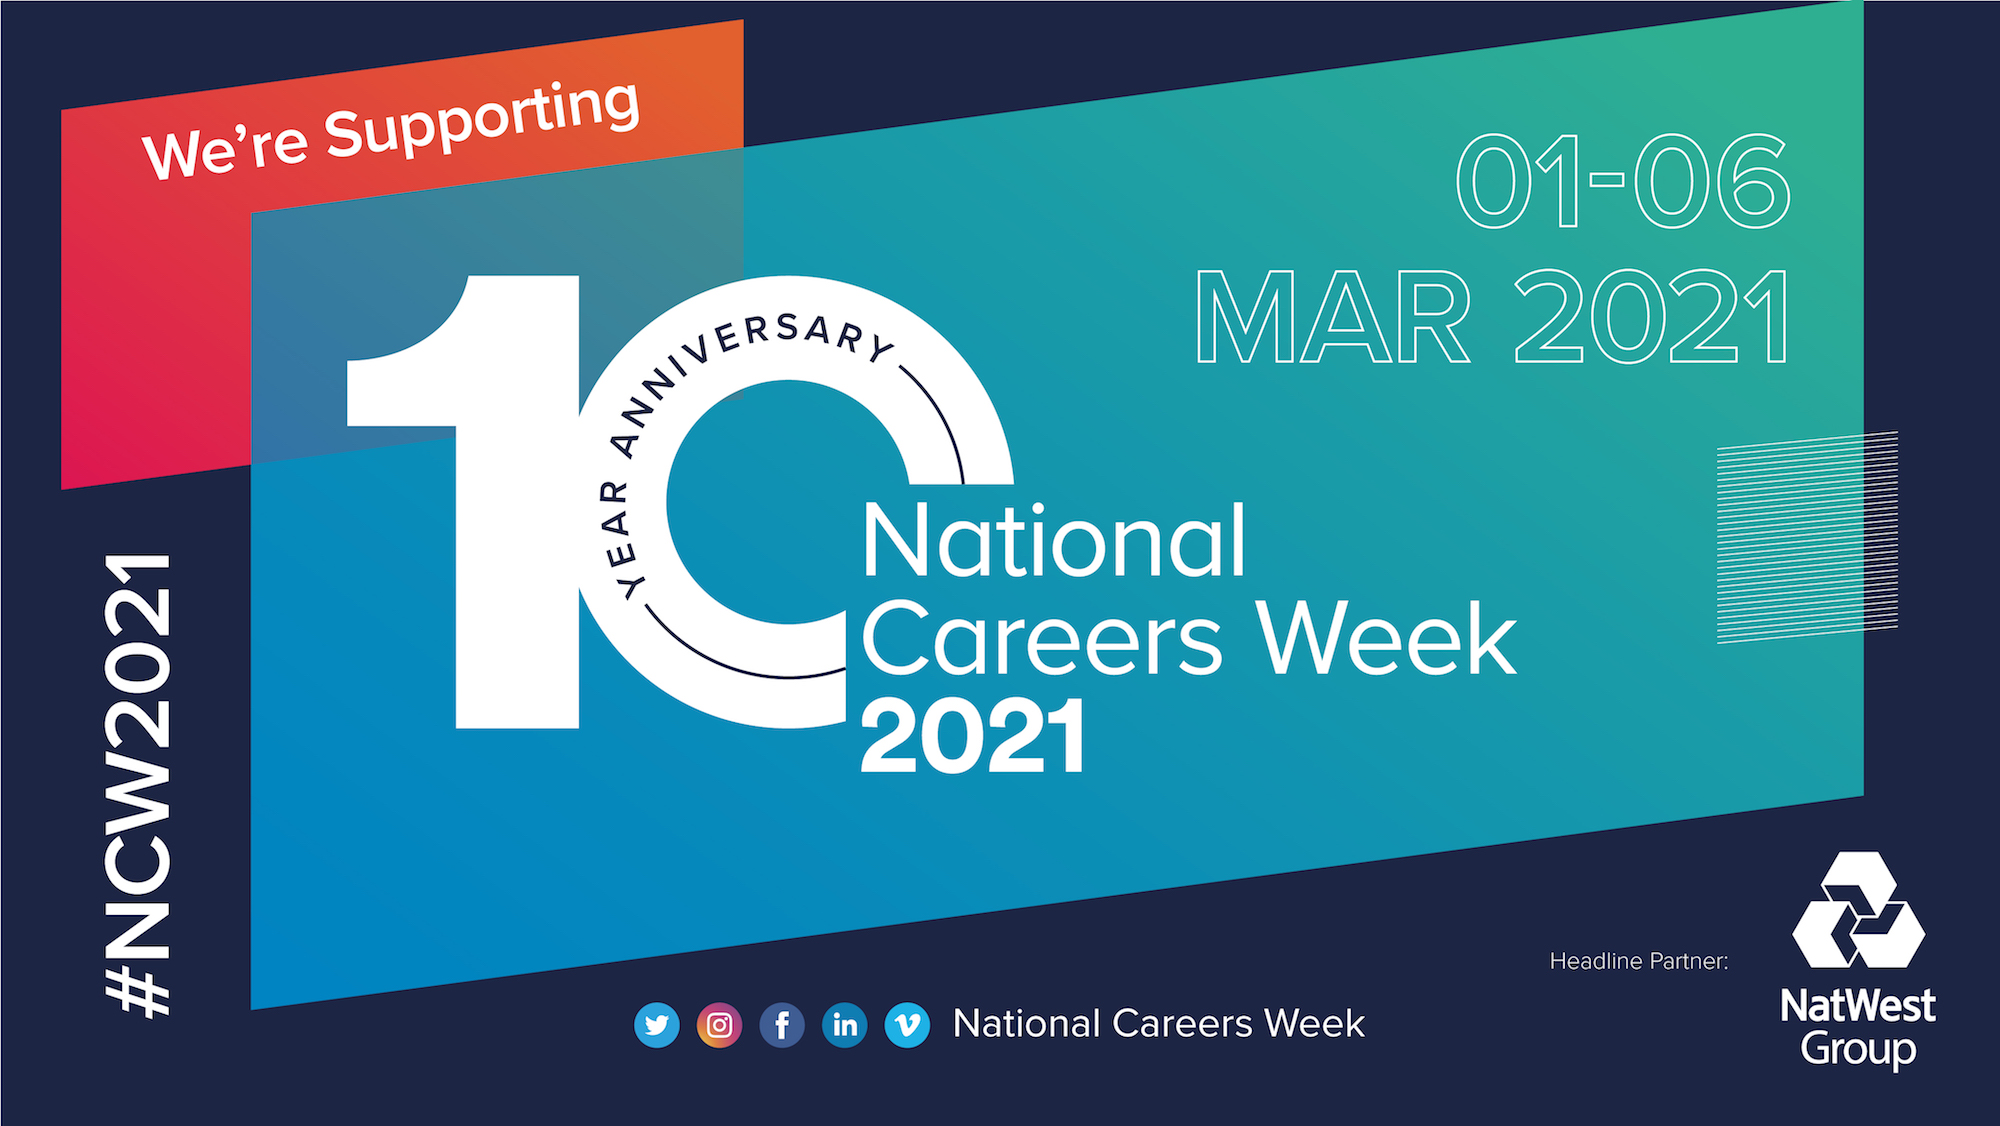 National Careers Week 2021 – A Huge Success!